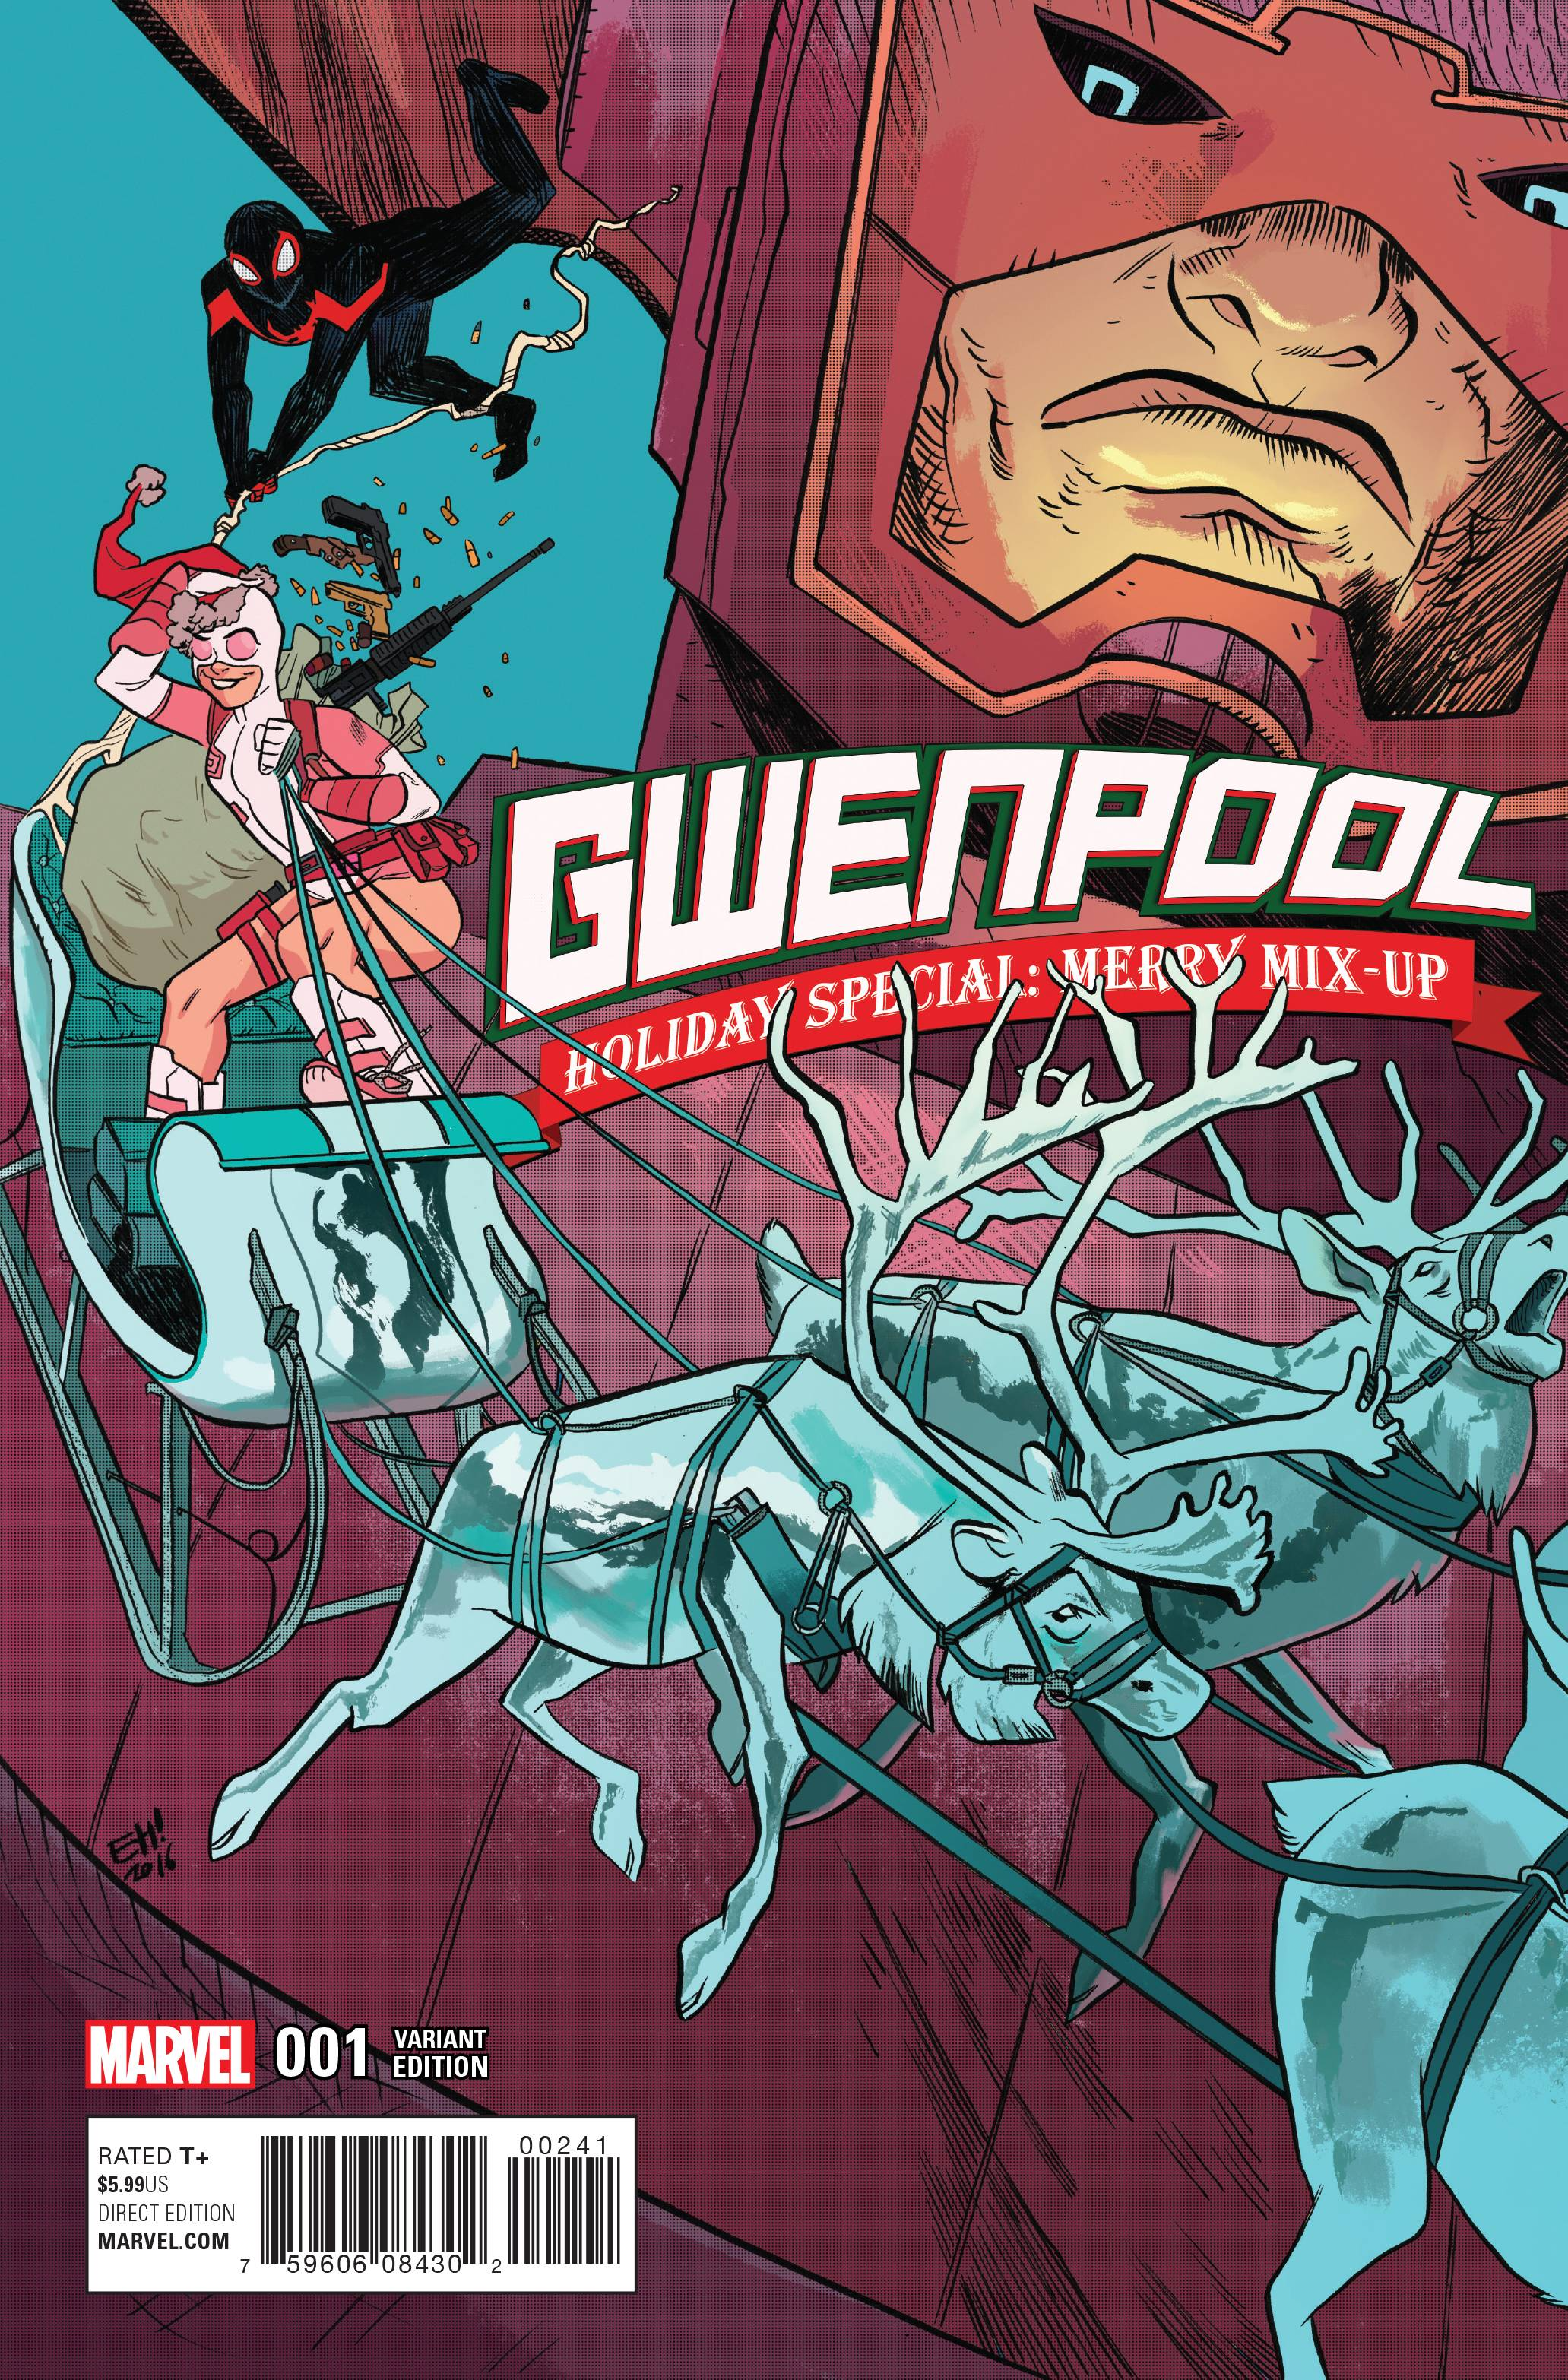 GWENPOOL HOLIDAY SPECIAL MERRY MIX UP HENDERSON VAR